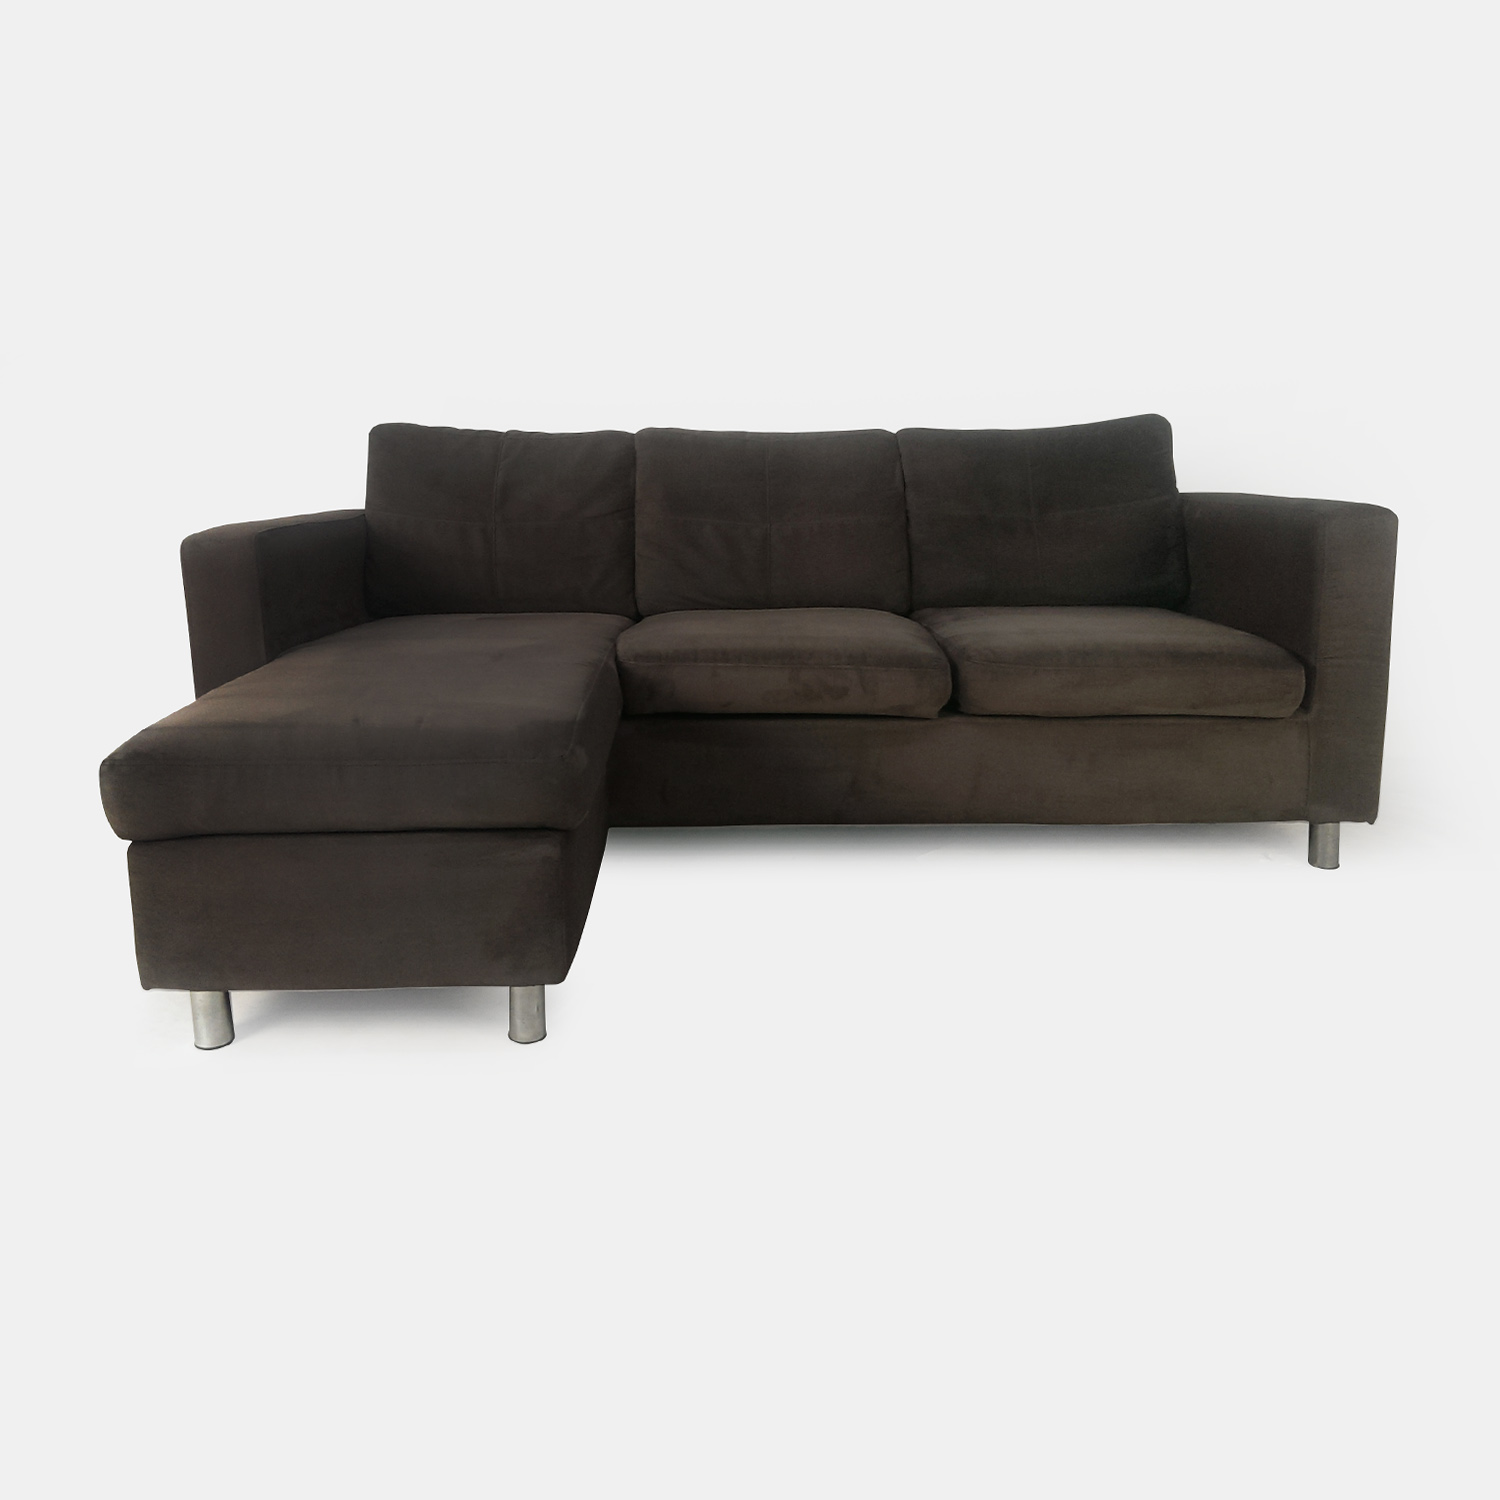 Brown suede couch brown suede couch and loveseat brown for Couch and loveseat